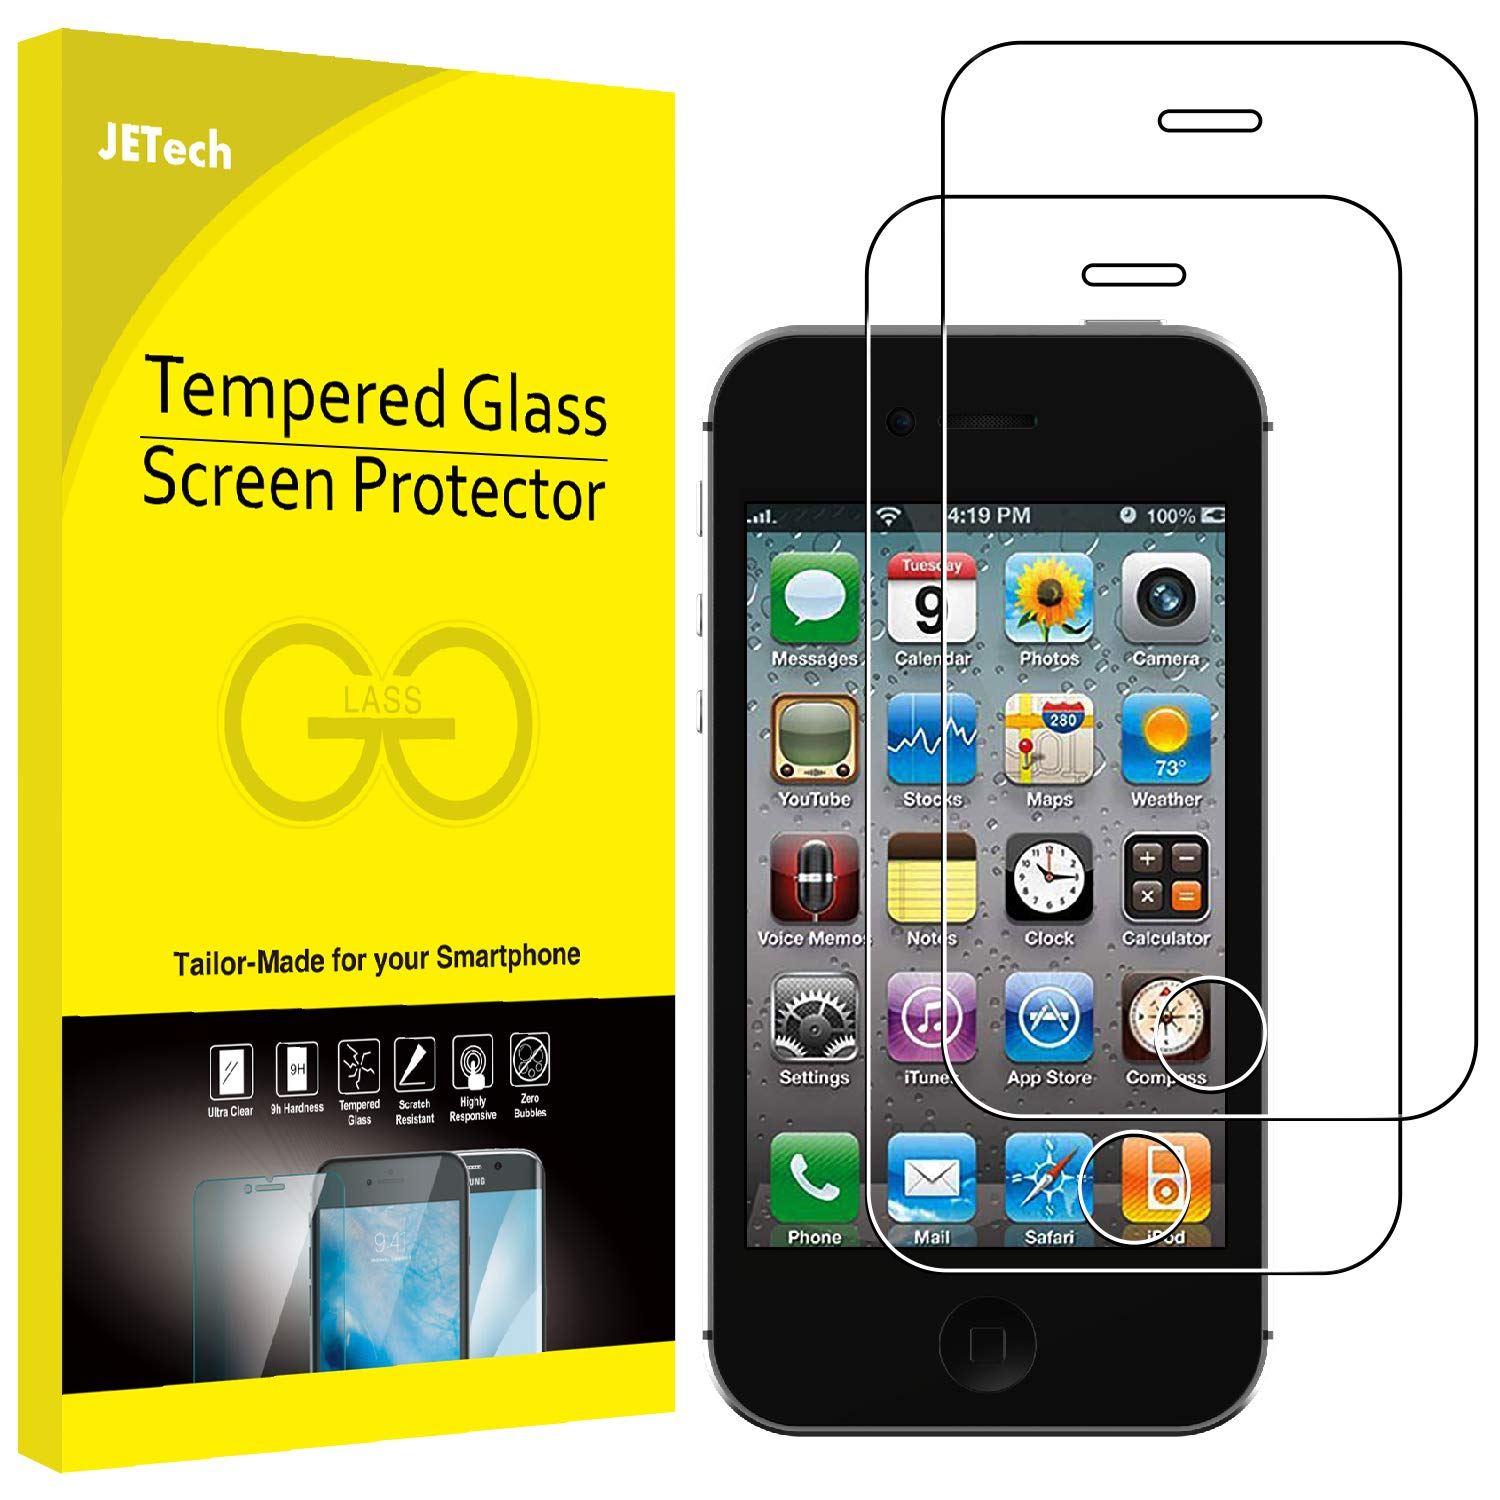 Amazon.com  JETech 2-Pack Screen Protector for Apple iPhone 4 and iPhone 4s 60f69b93e3